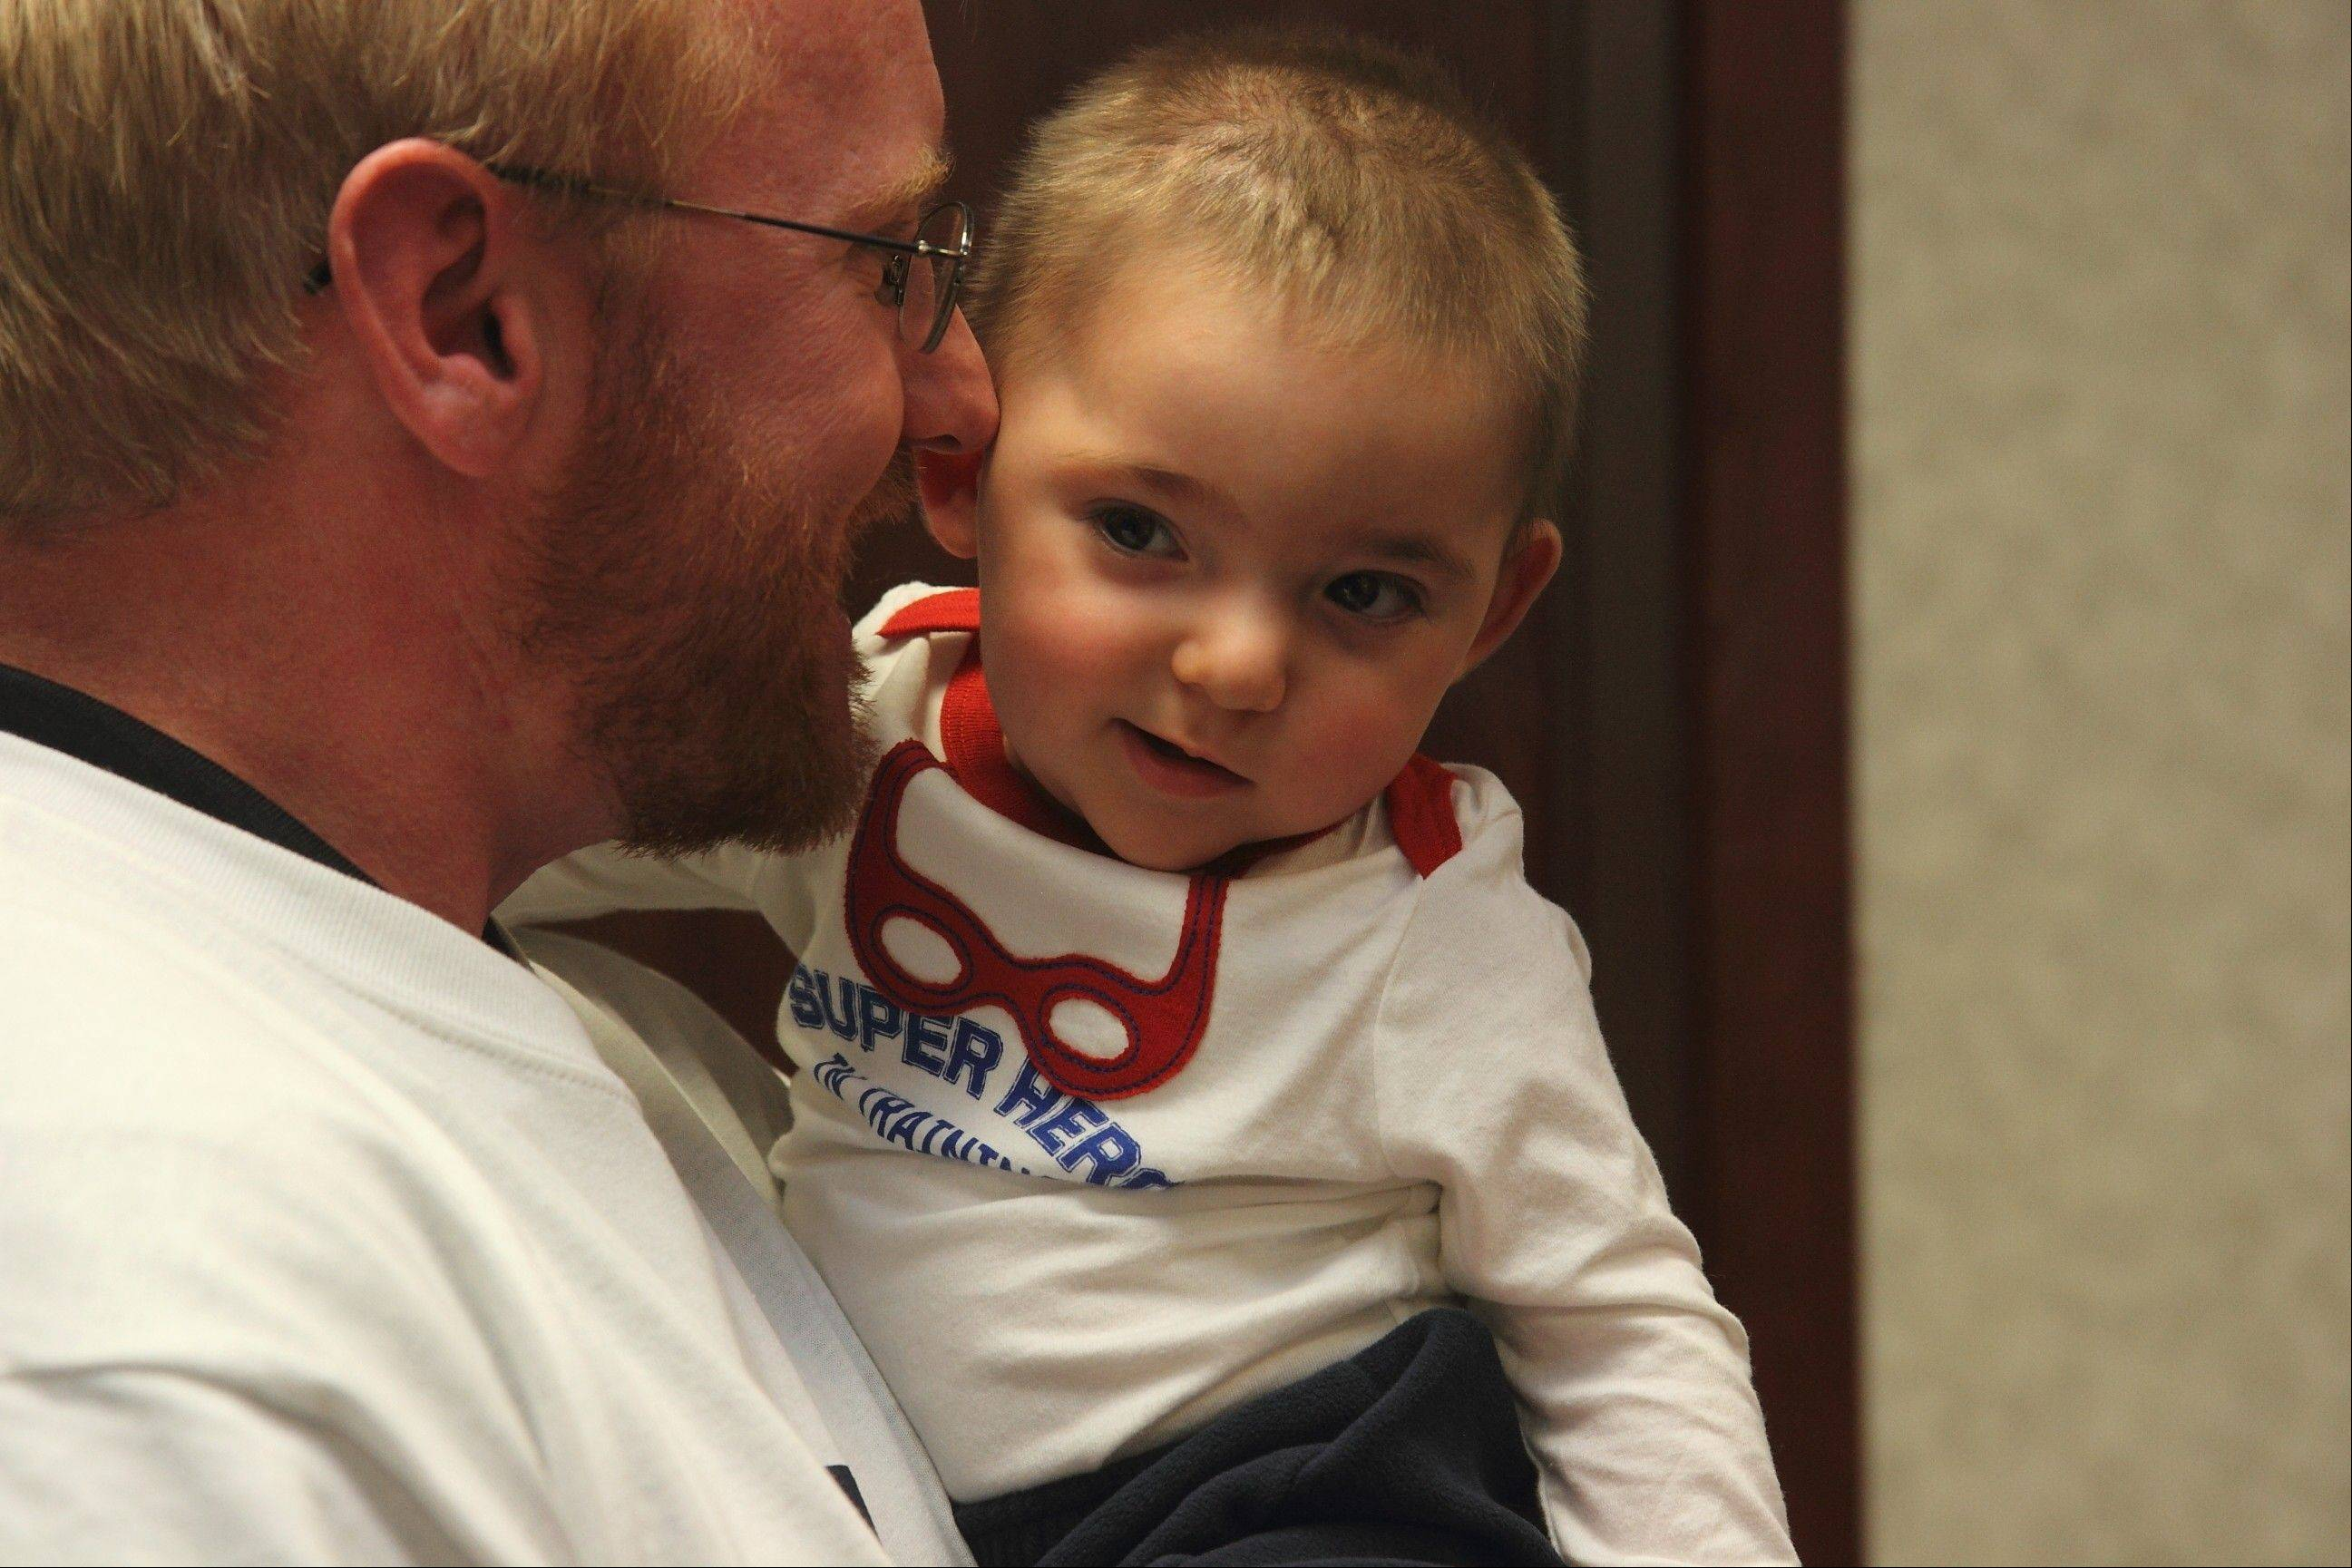 Matthew Erickson, a Huntley boy who was born with brain cancer, recently celebrated his first birthday with a superhero themed birthday party that attracted nearly 200 people on Dec. 9. Here he is with his father, Ben.